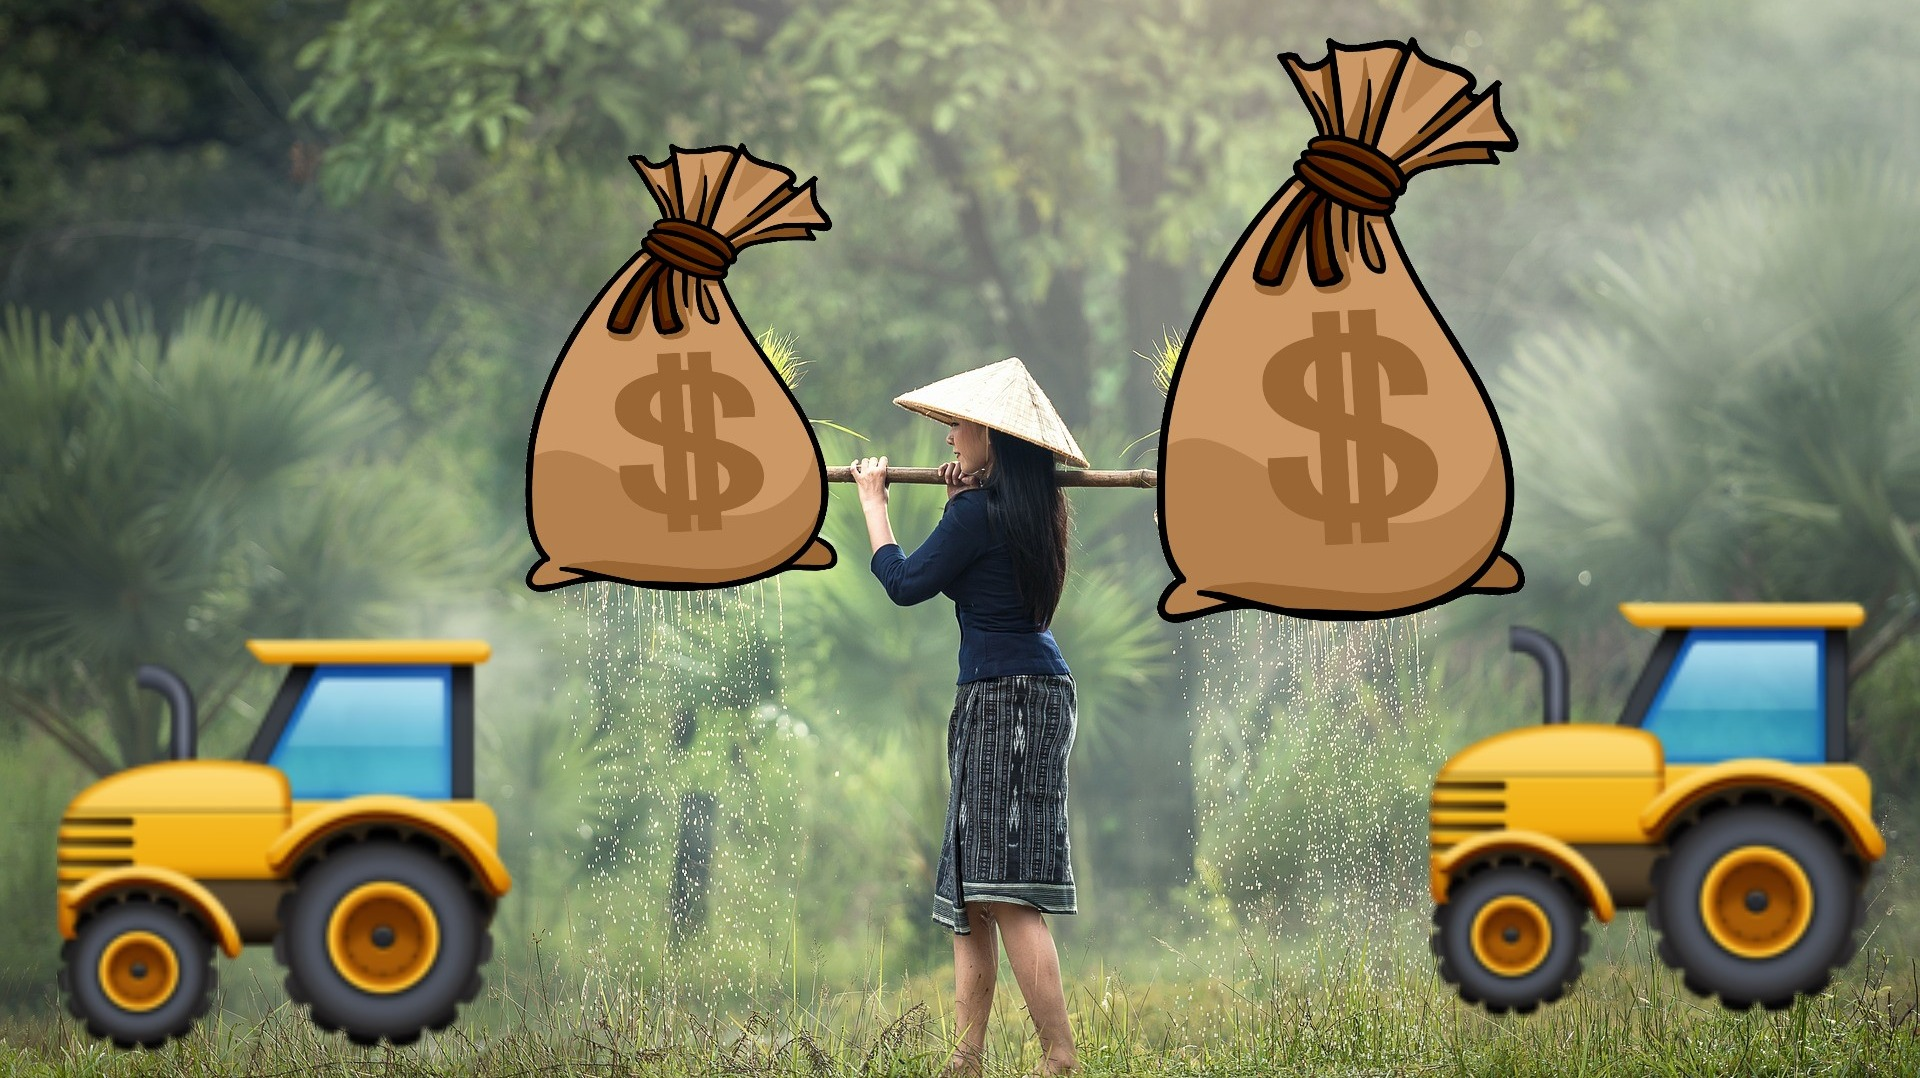 Multiply Your Earnings Massively With FARM #CropSpotter